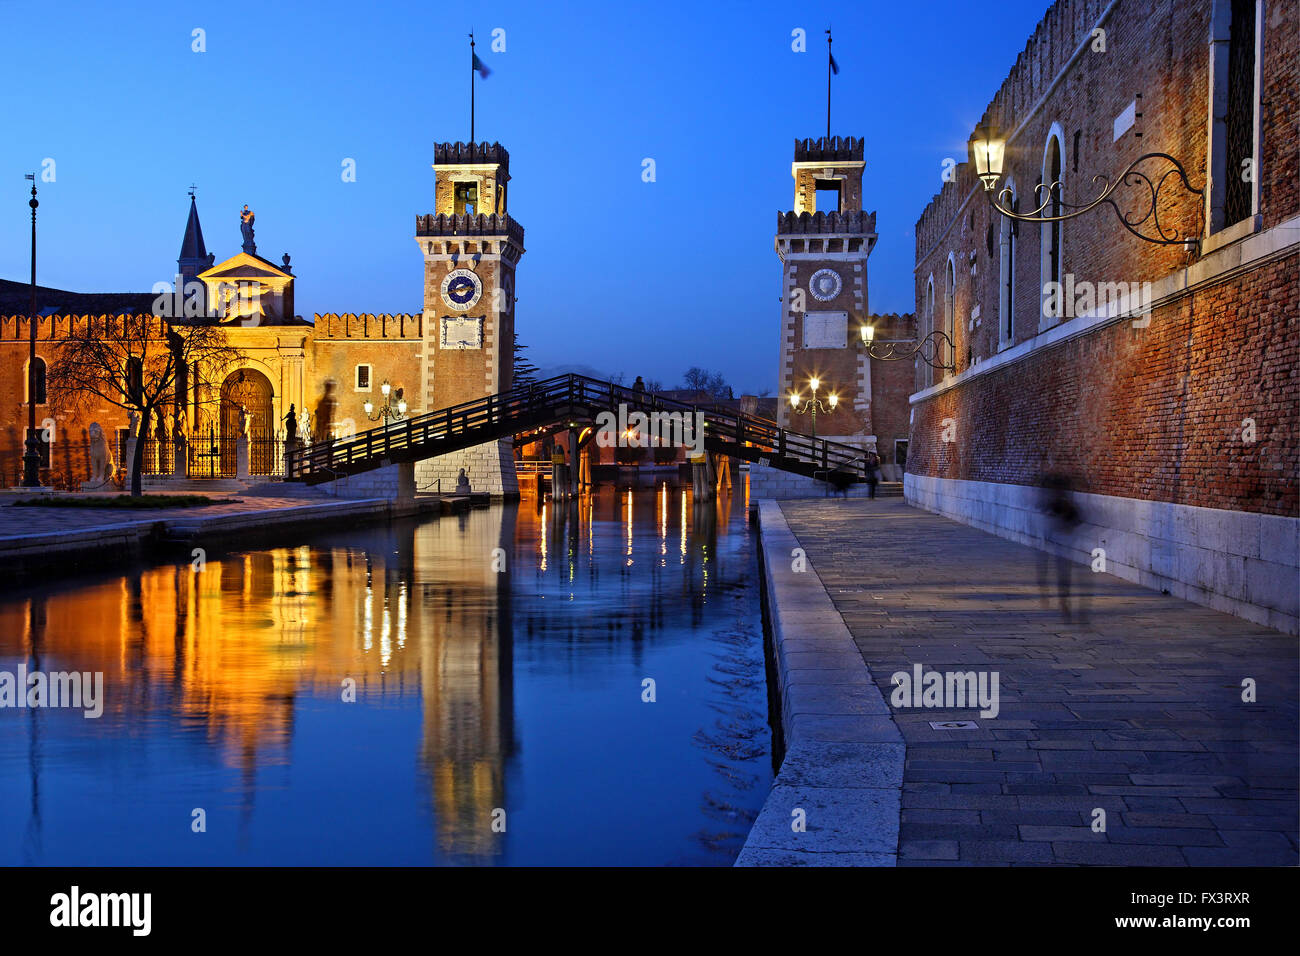 The Arsenale (shipyards), Sestiere di Castello, Venezia (Venice), Italy. - Stock Image